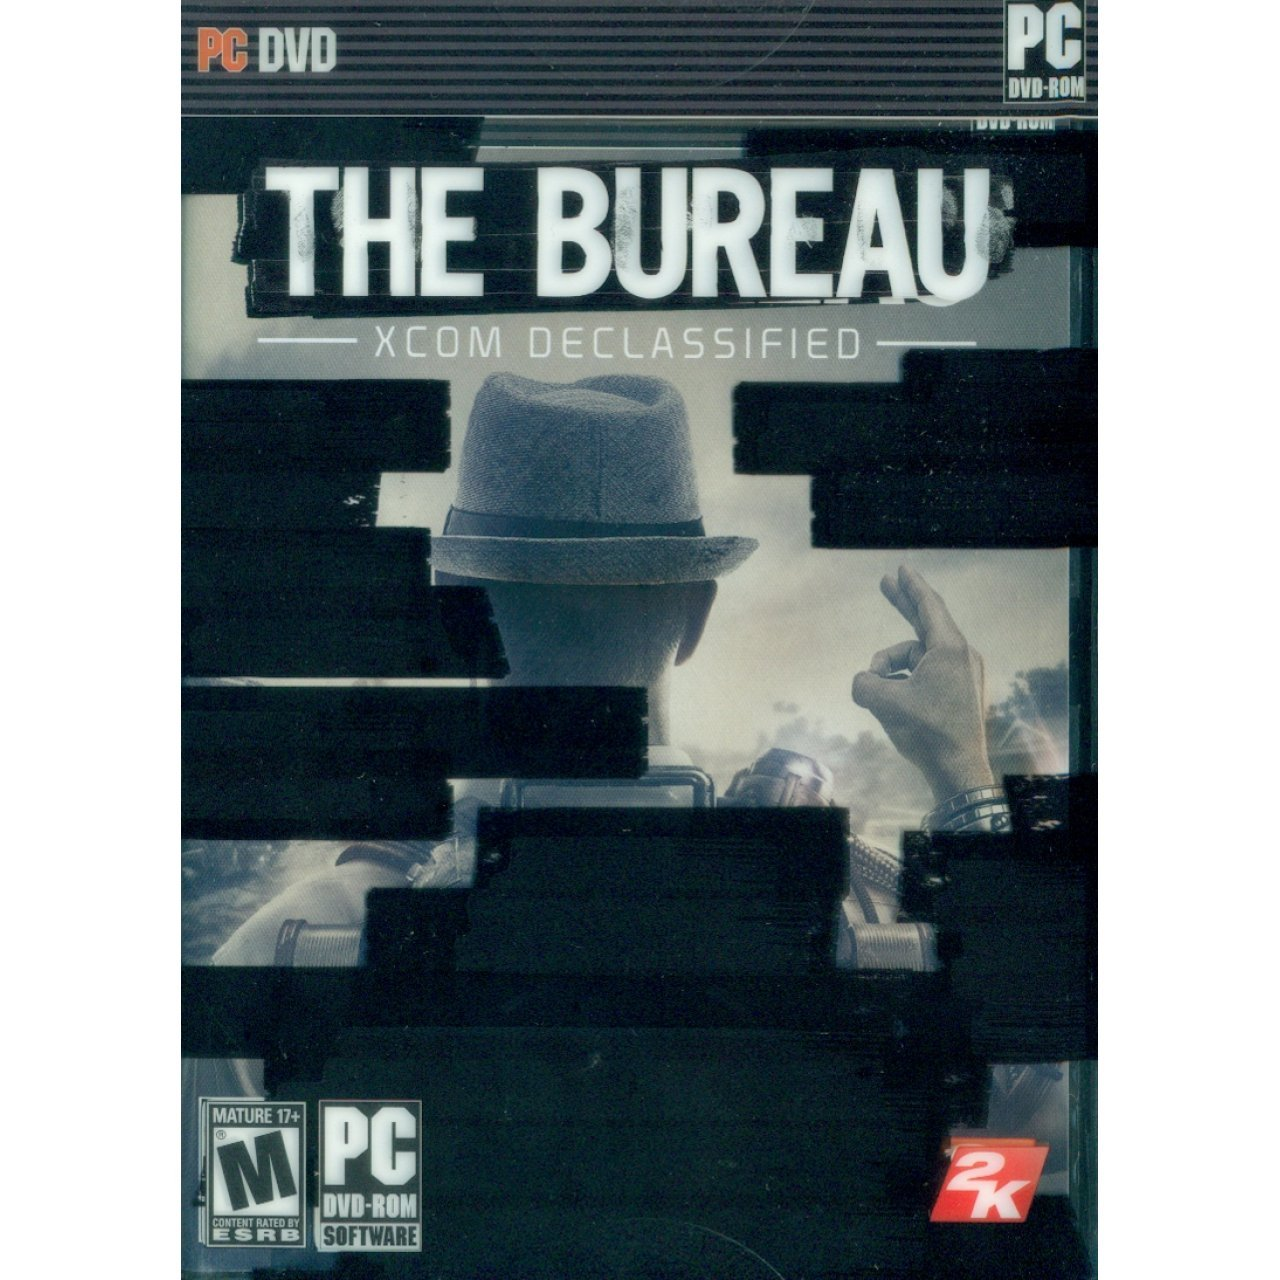 The bureau xcom declassified dvd rom for Bureau 13 pc game